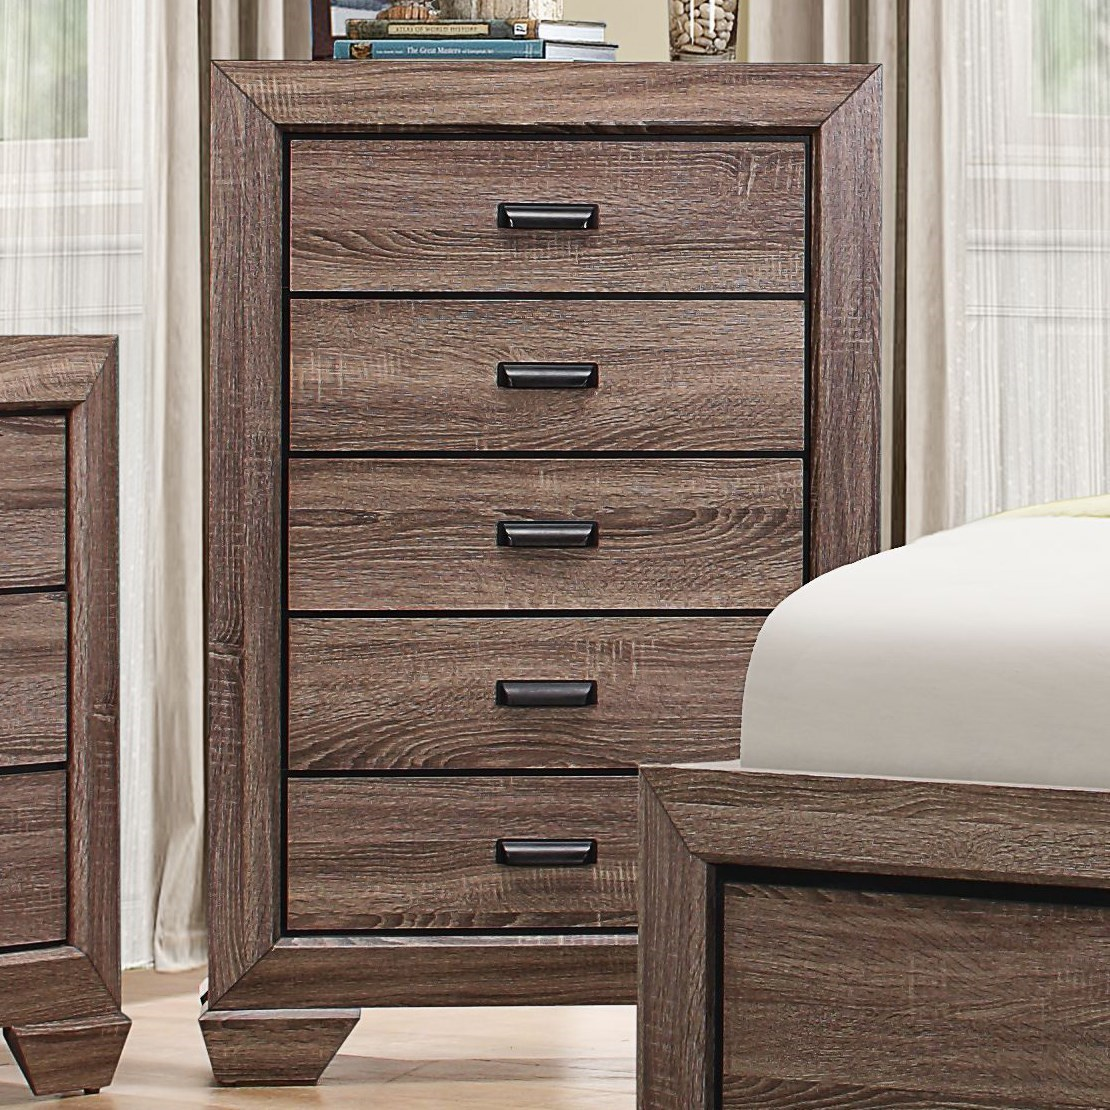 Homelegance Beechnut 1904 9 Contemporary 5 Drawer Chest With Dovetail Joinery Del Sol